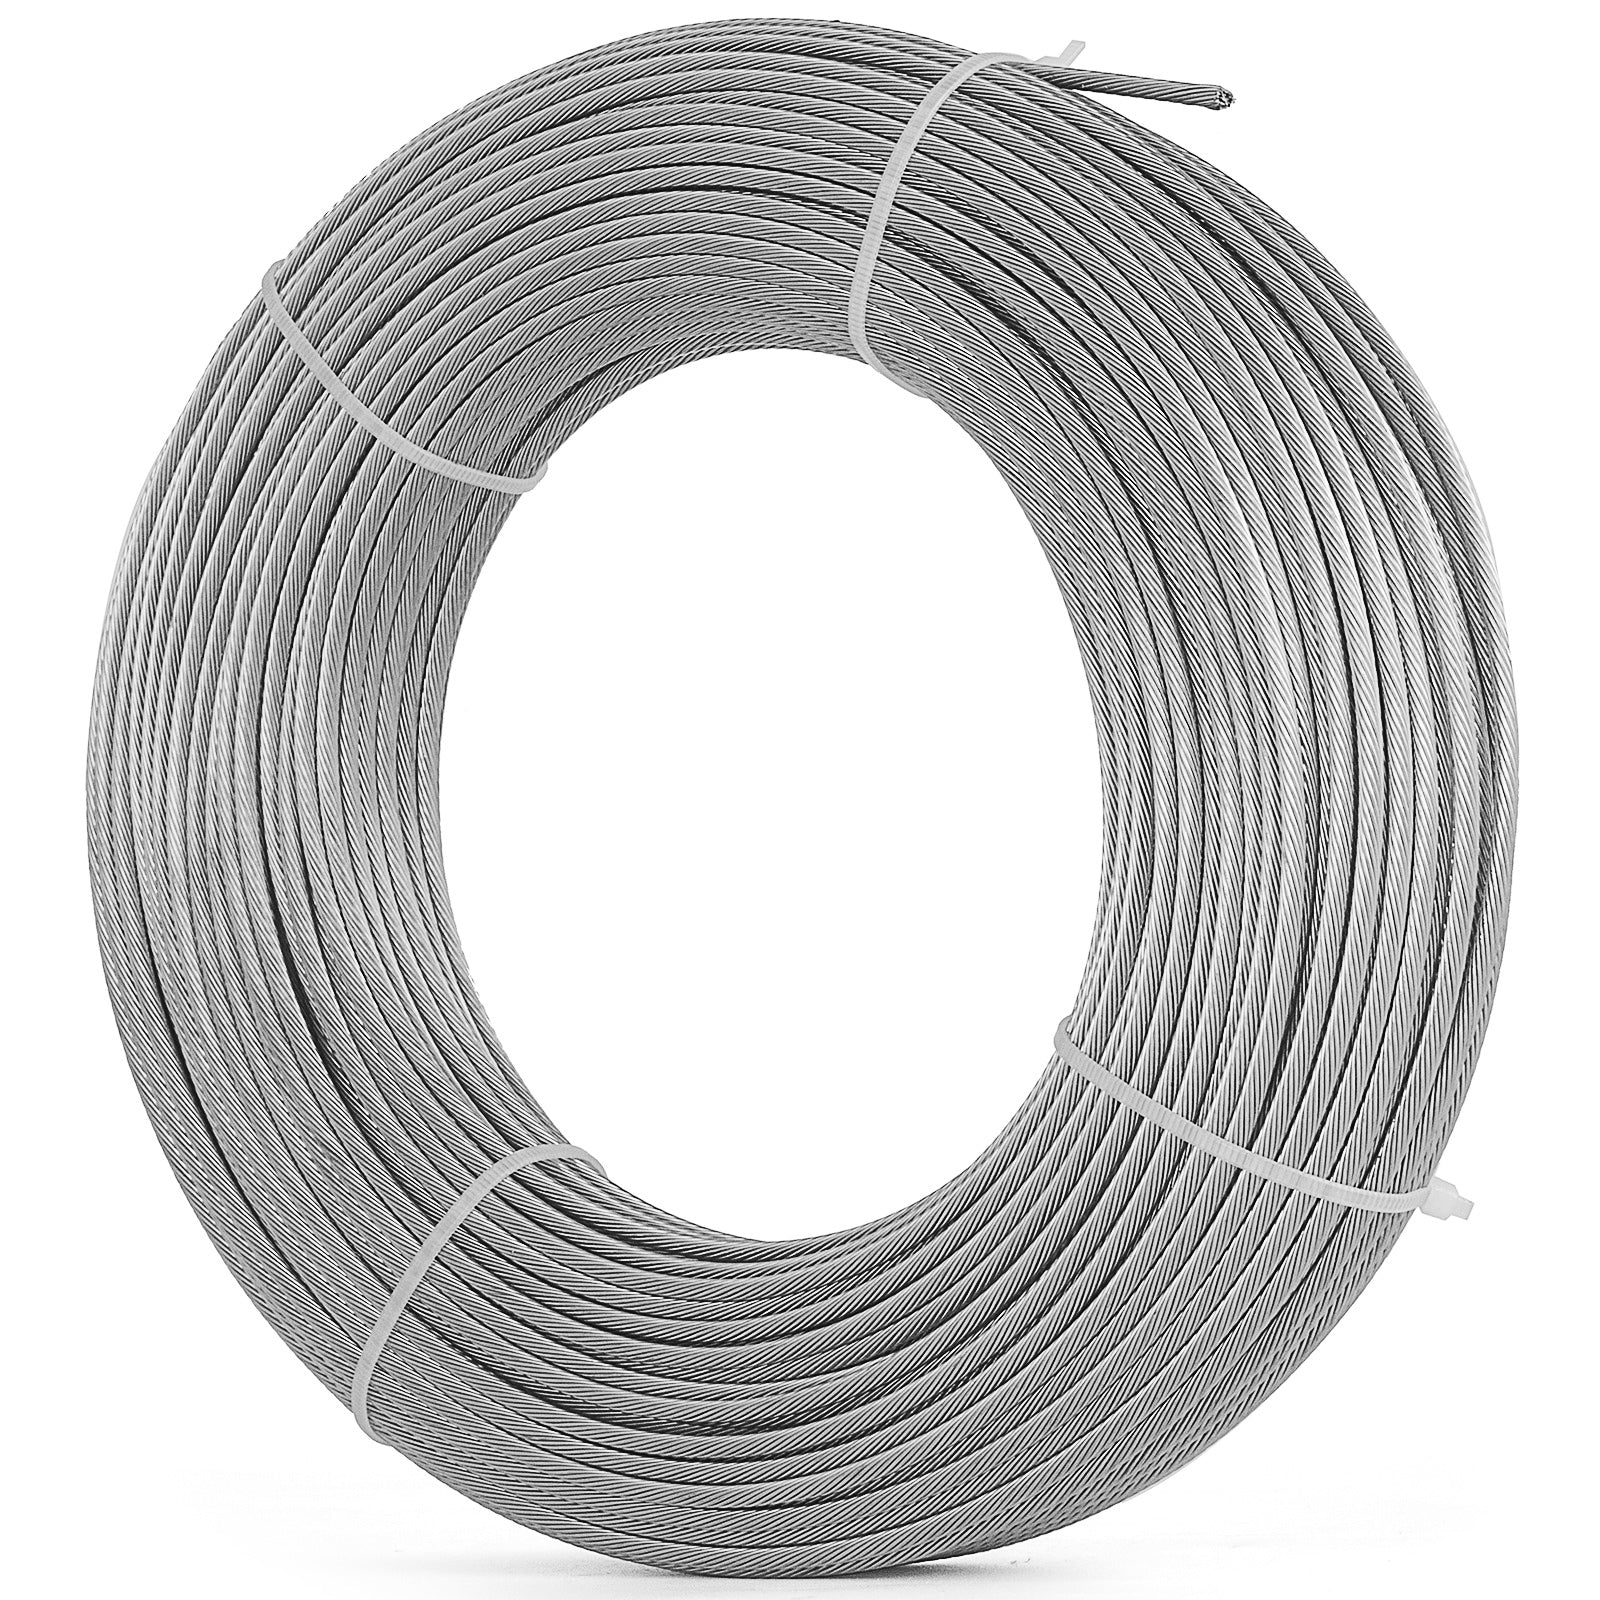 "T316 Stainless Steel Cable 165ft 7x7 1/8"" Wire Rope Strand Medicine Rigging"